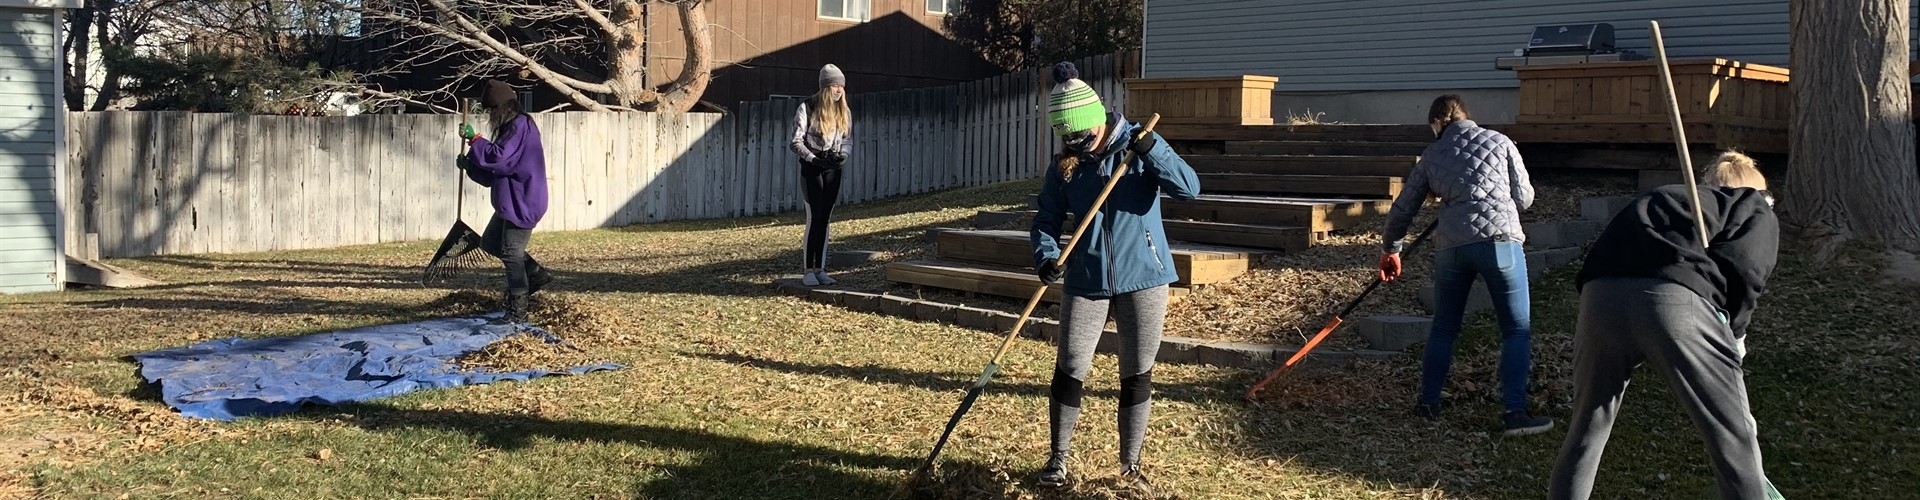 Our Jr Civitan Club raked leaves for the Rake-a-Difference fundraiser for the Pocatello Free Clinic